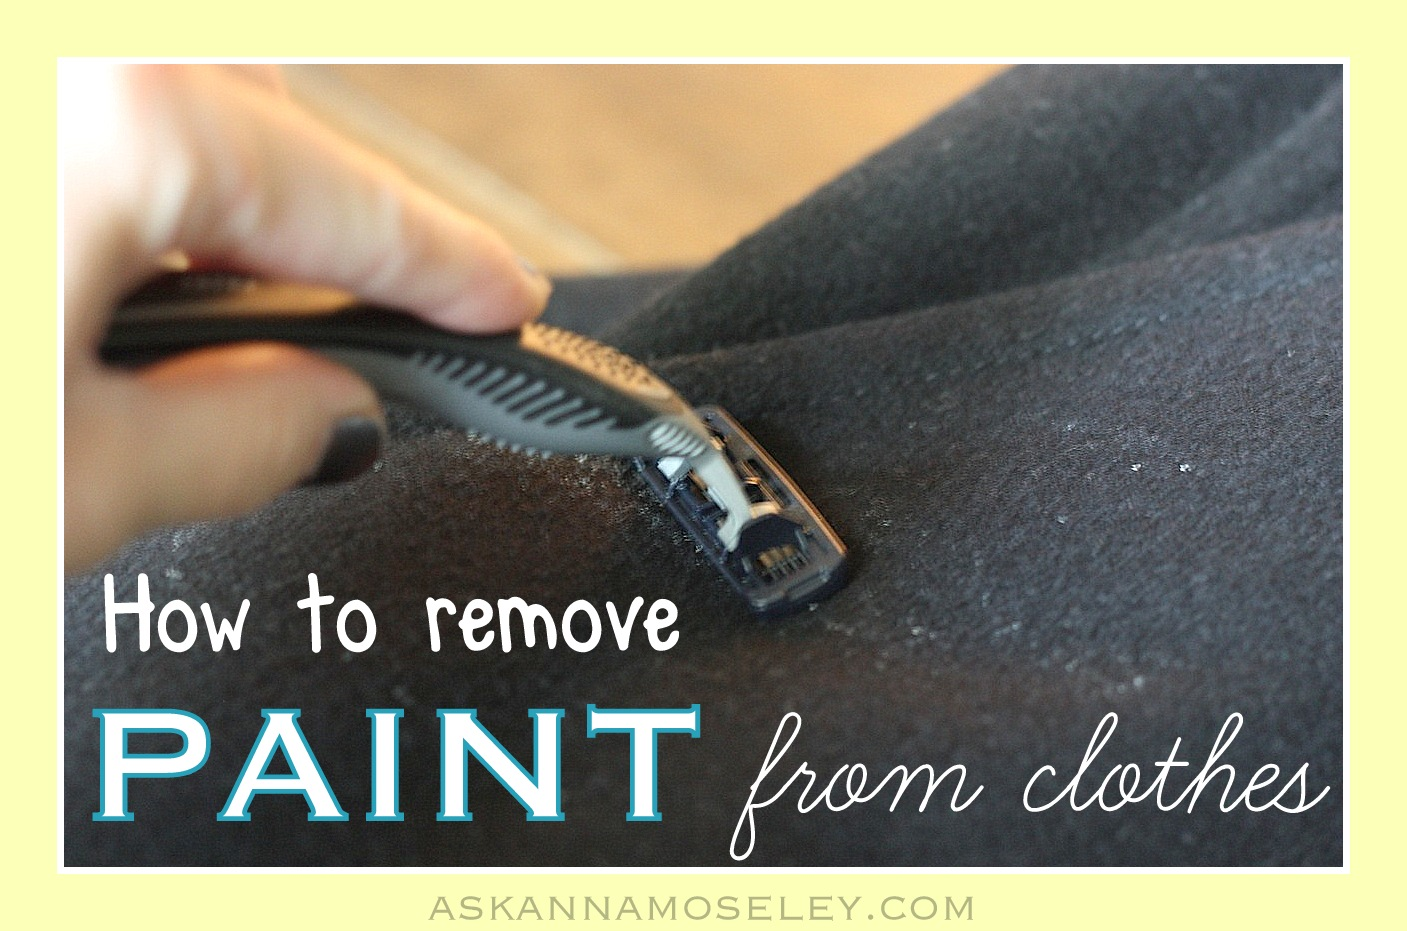 How to get Paint off Clothes